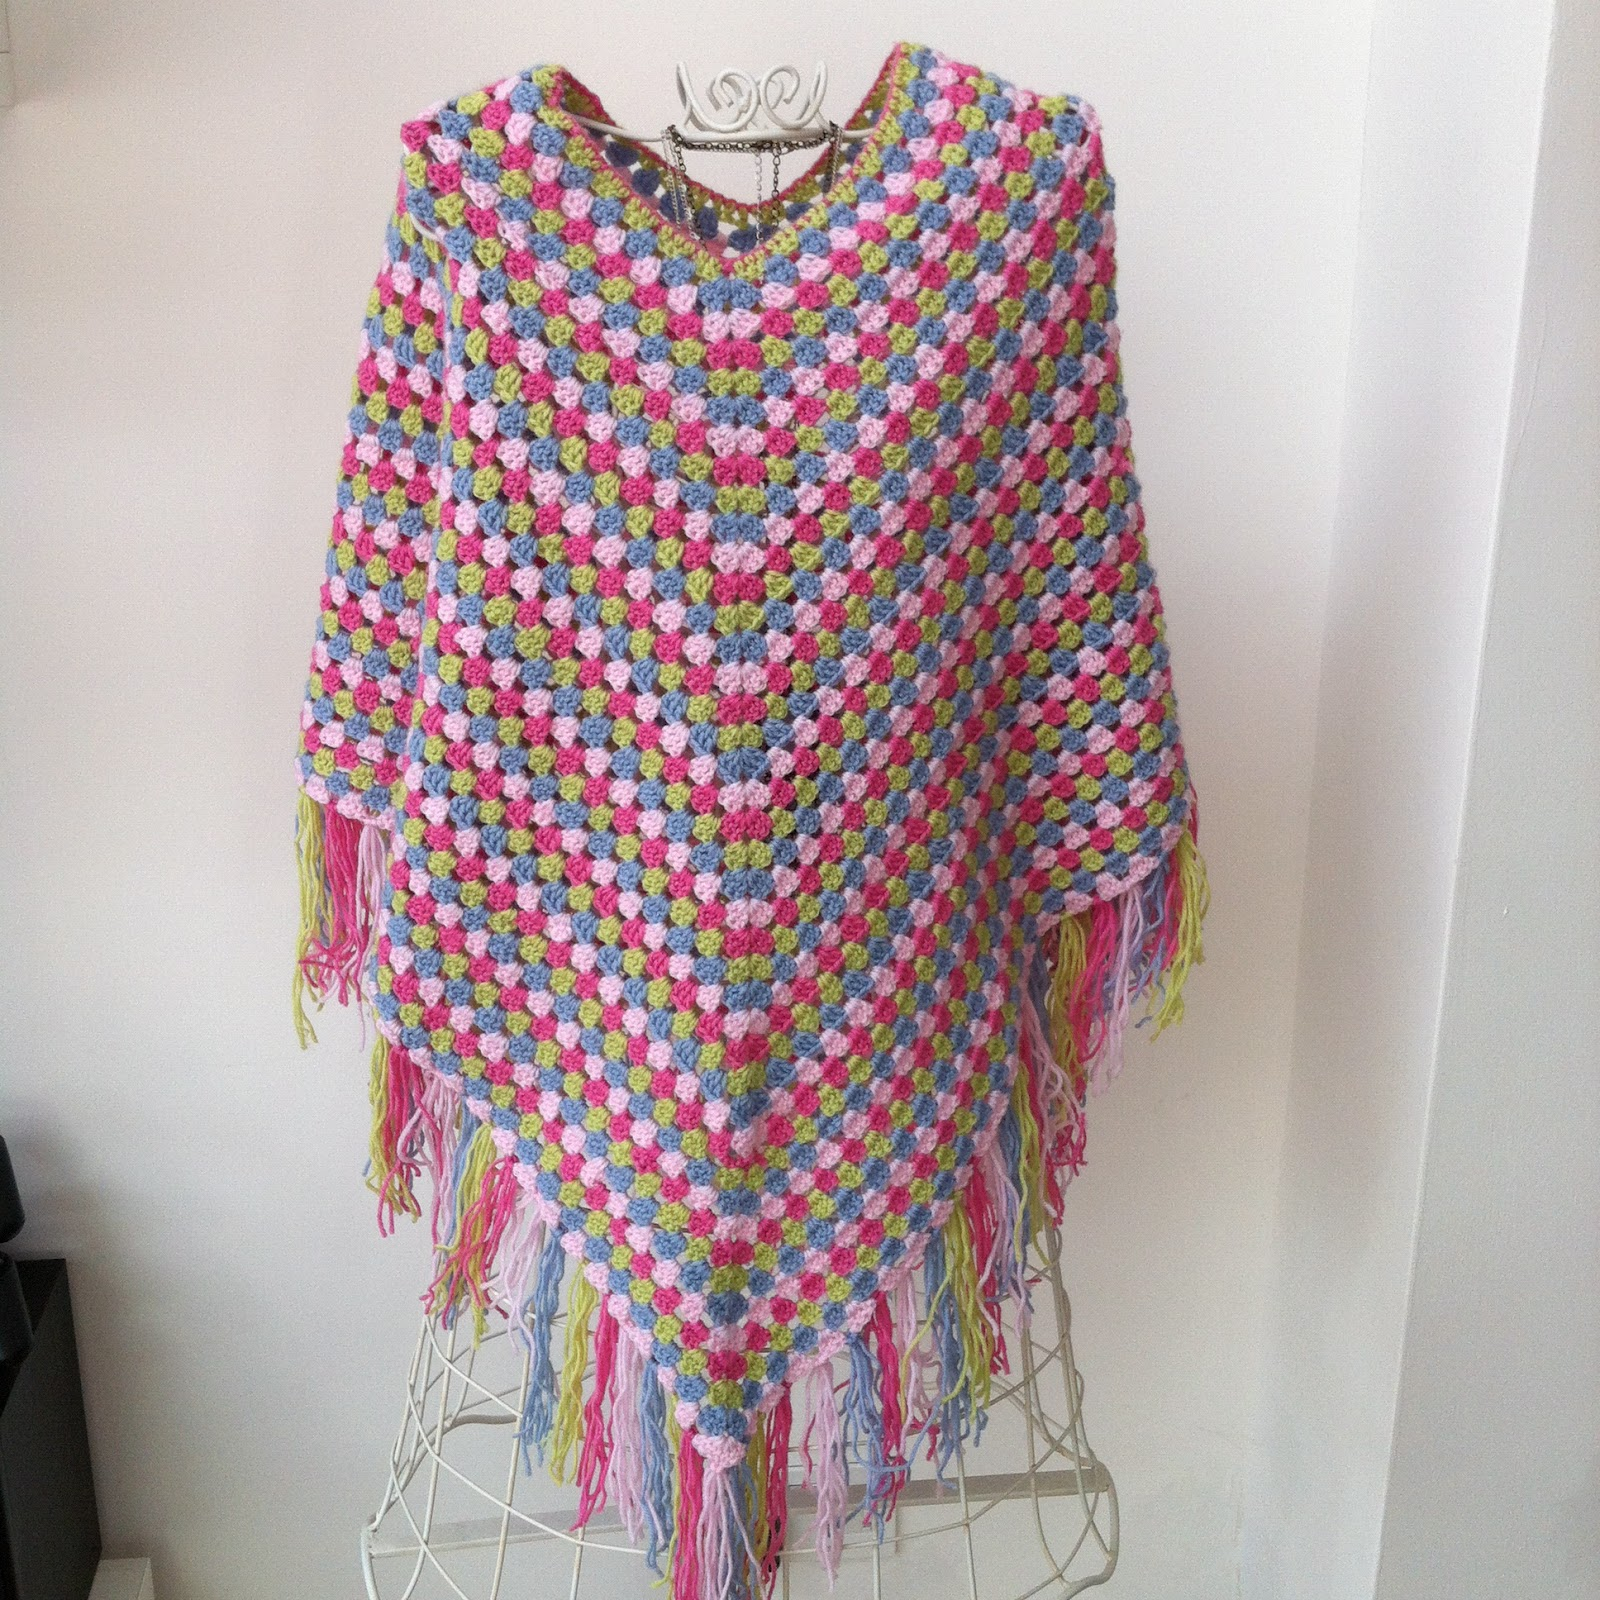 Crochet Patterns For Ponchos : jpeg 630kb crochet poncho 1000 x 1370 jpeg 224kb from marilyn crochet ...